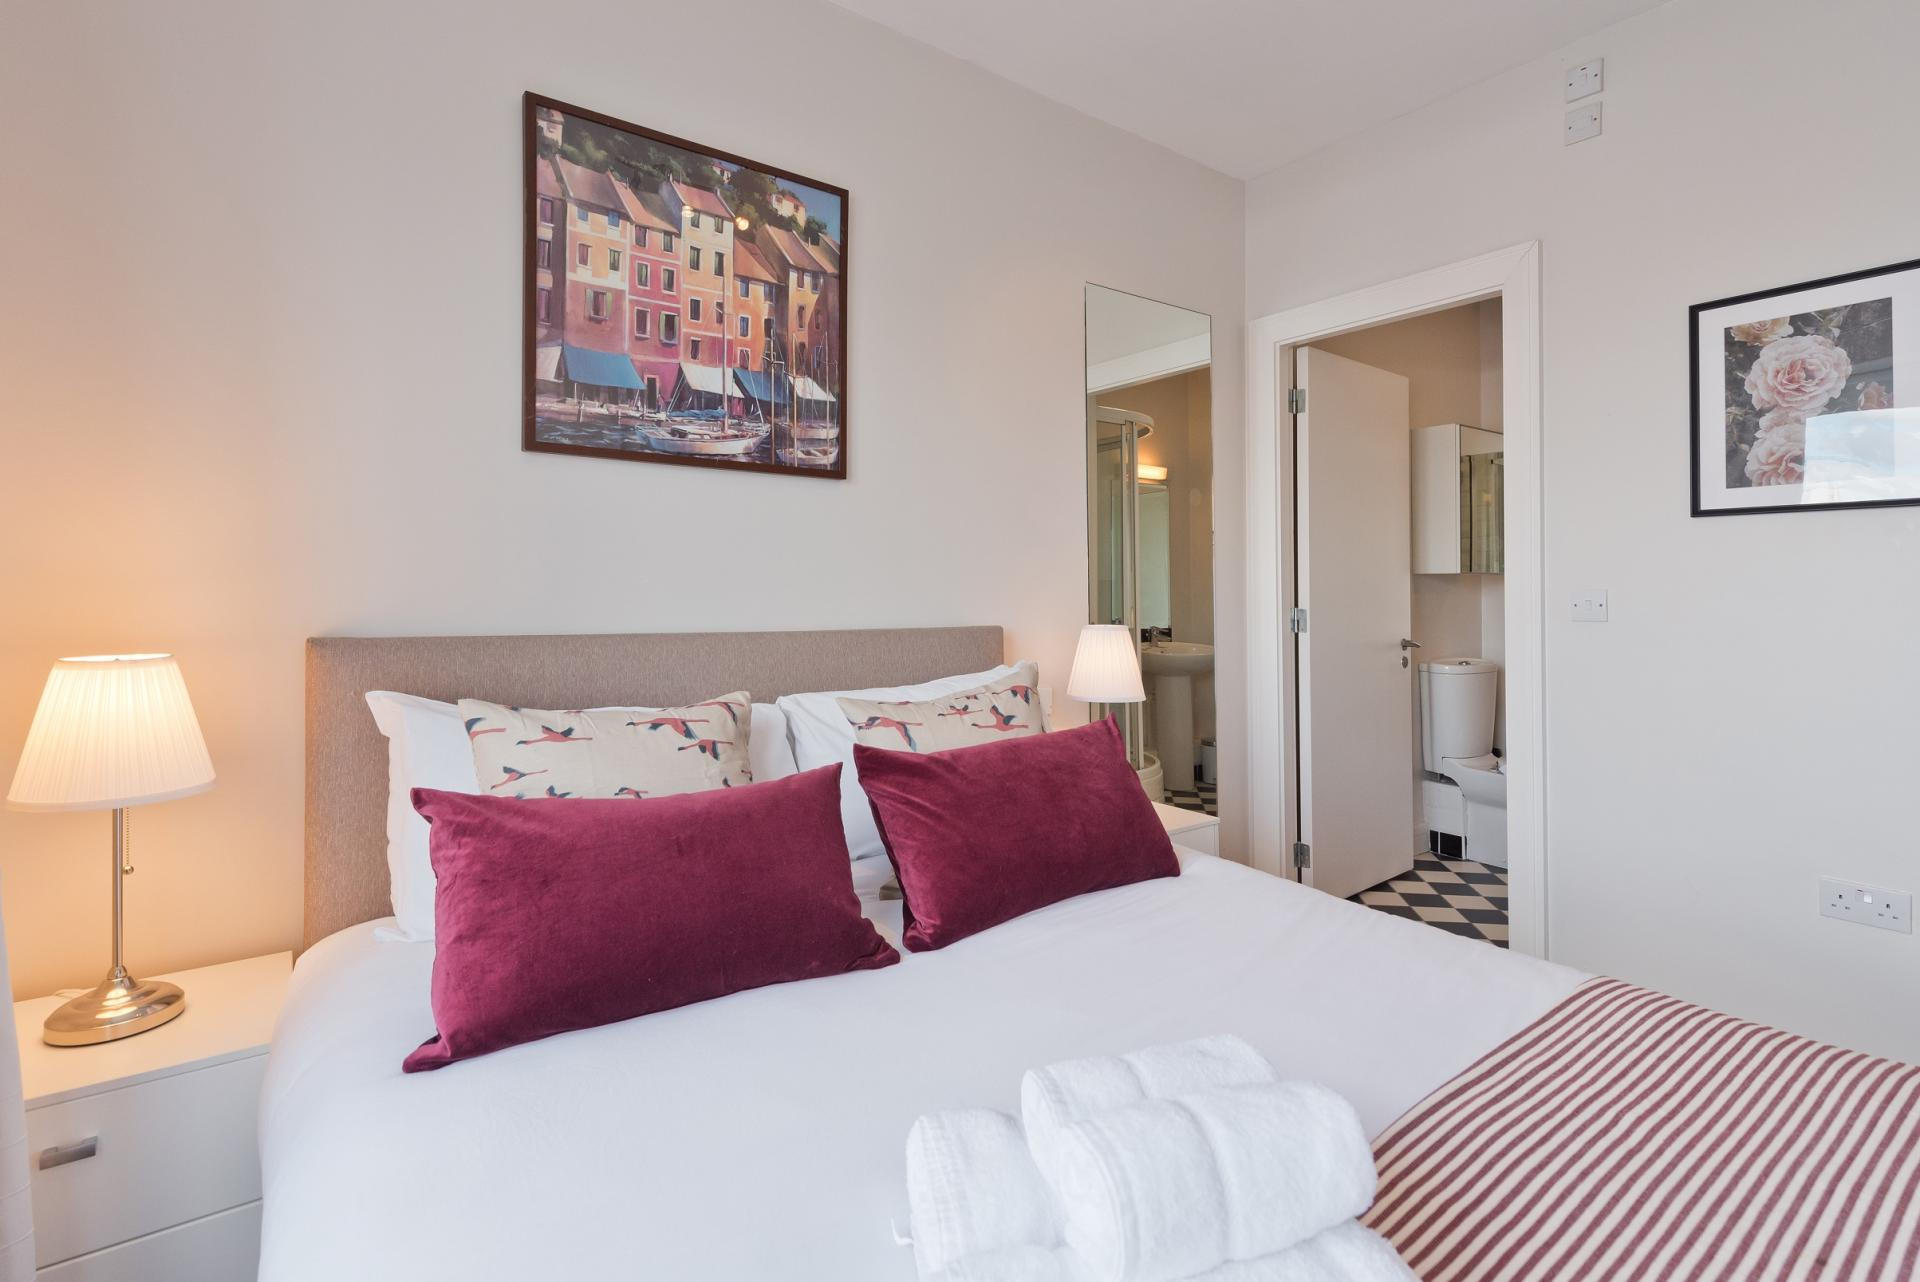 Double bed at Grand Canal Wharf 4 Apartment, Ringsend, Dublin